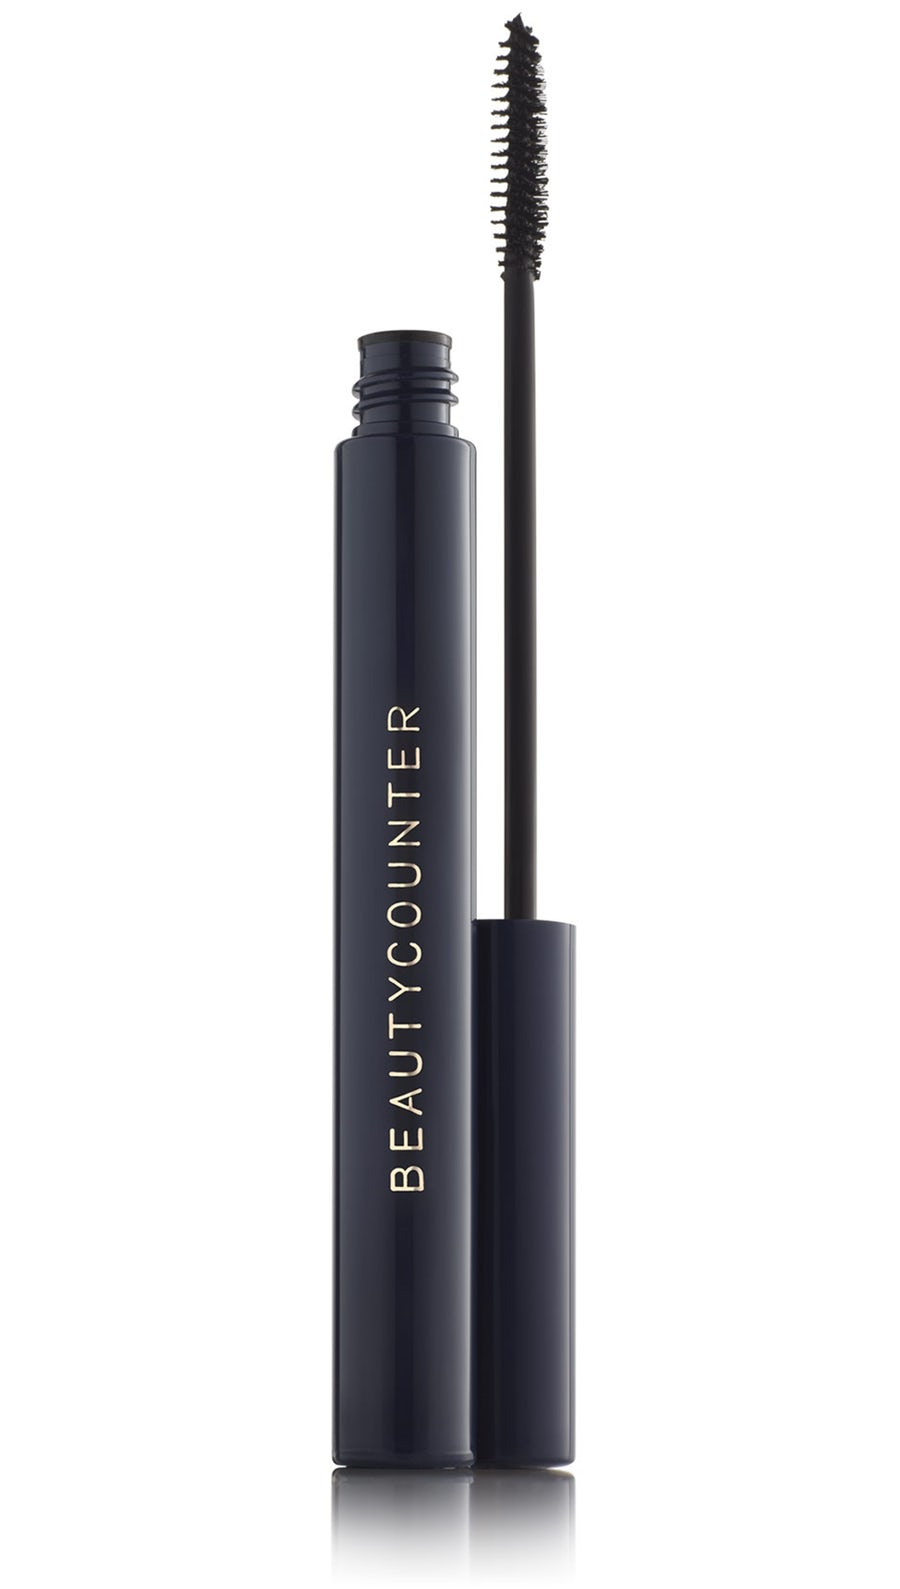 product-images-2551-imgs-bc_lengtheningmascara_selling02_web.jpg